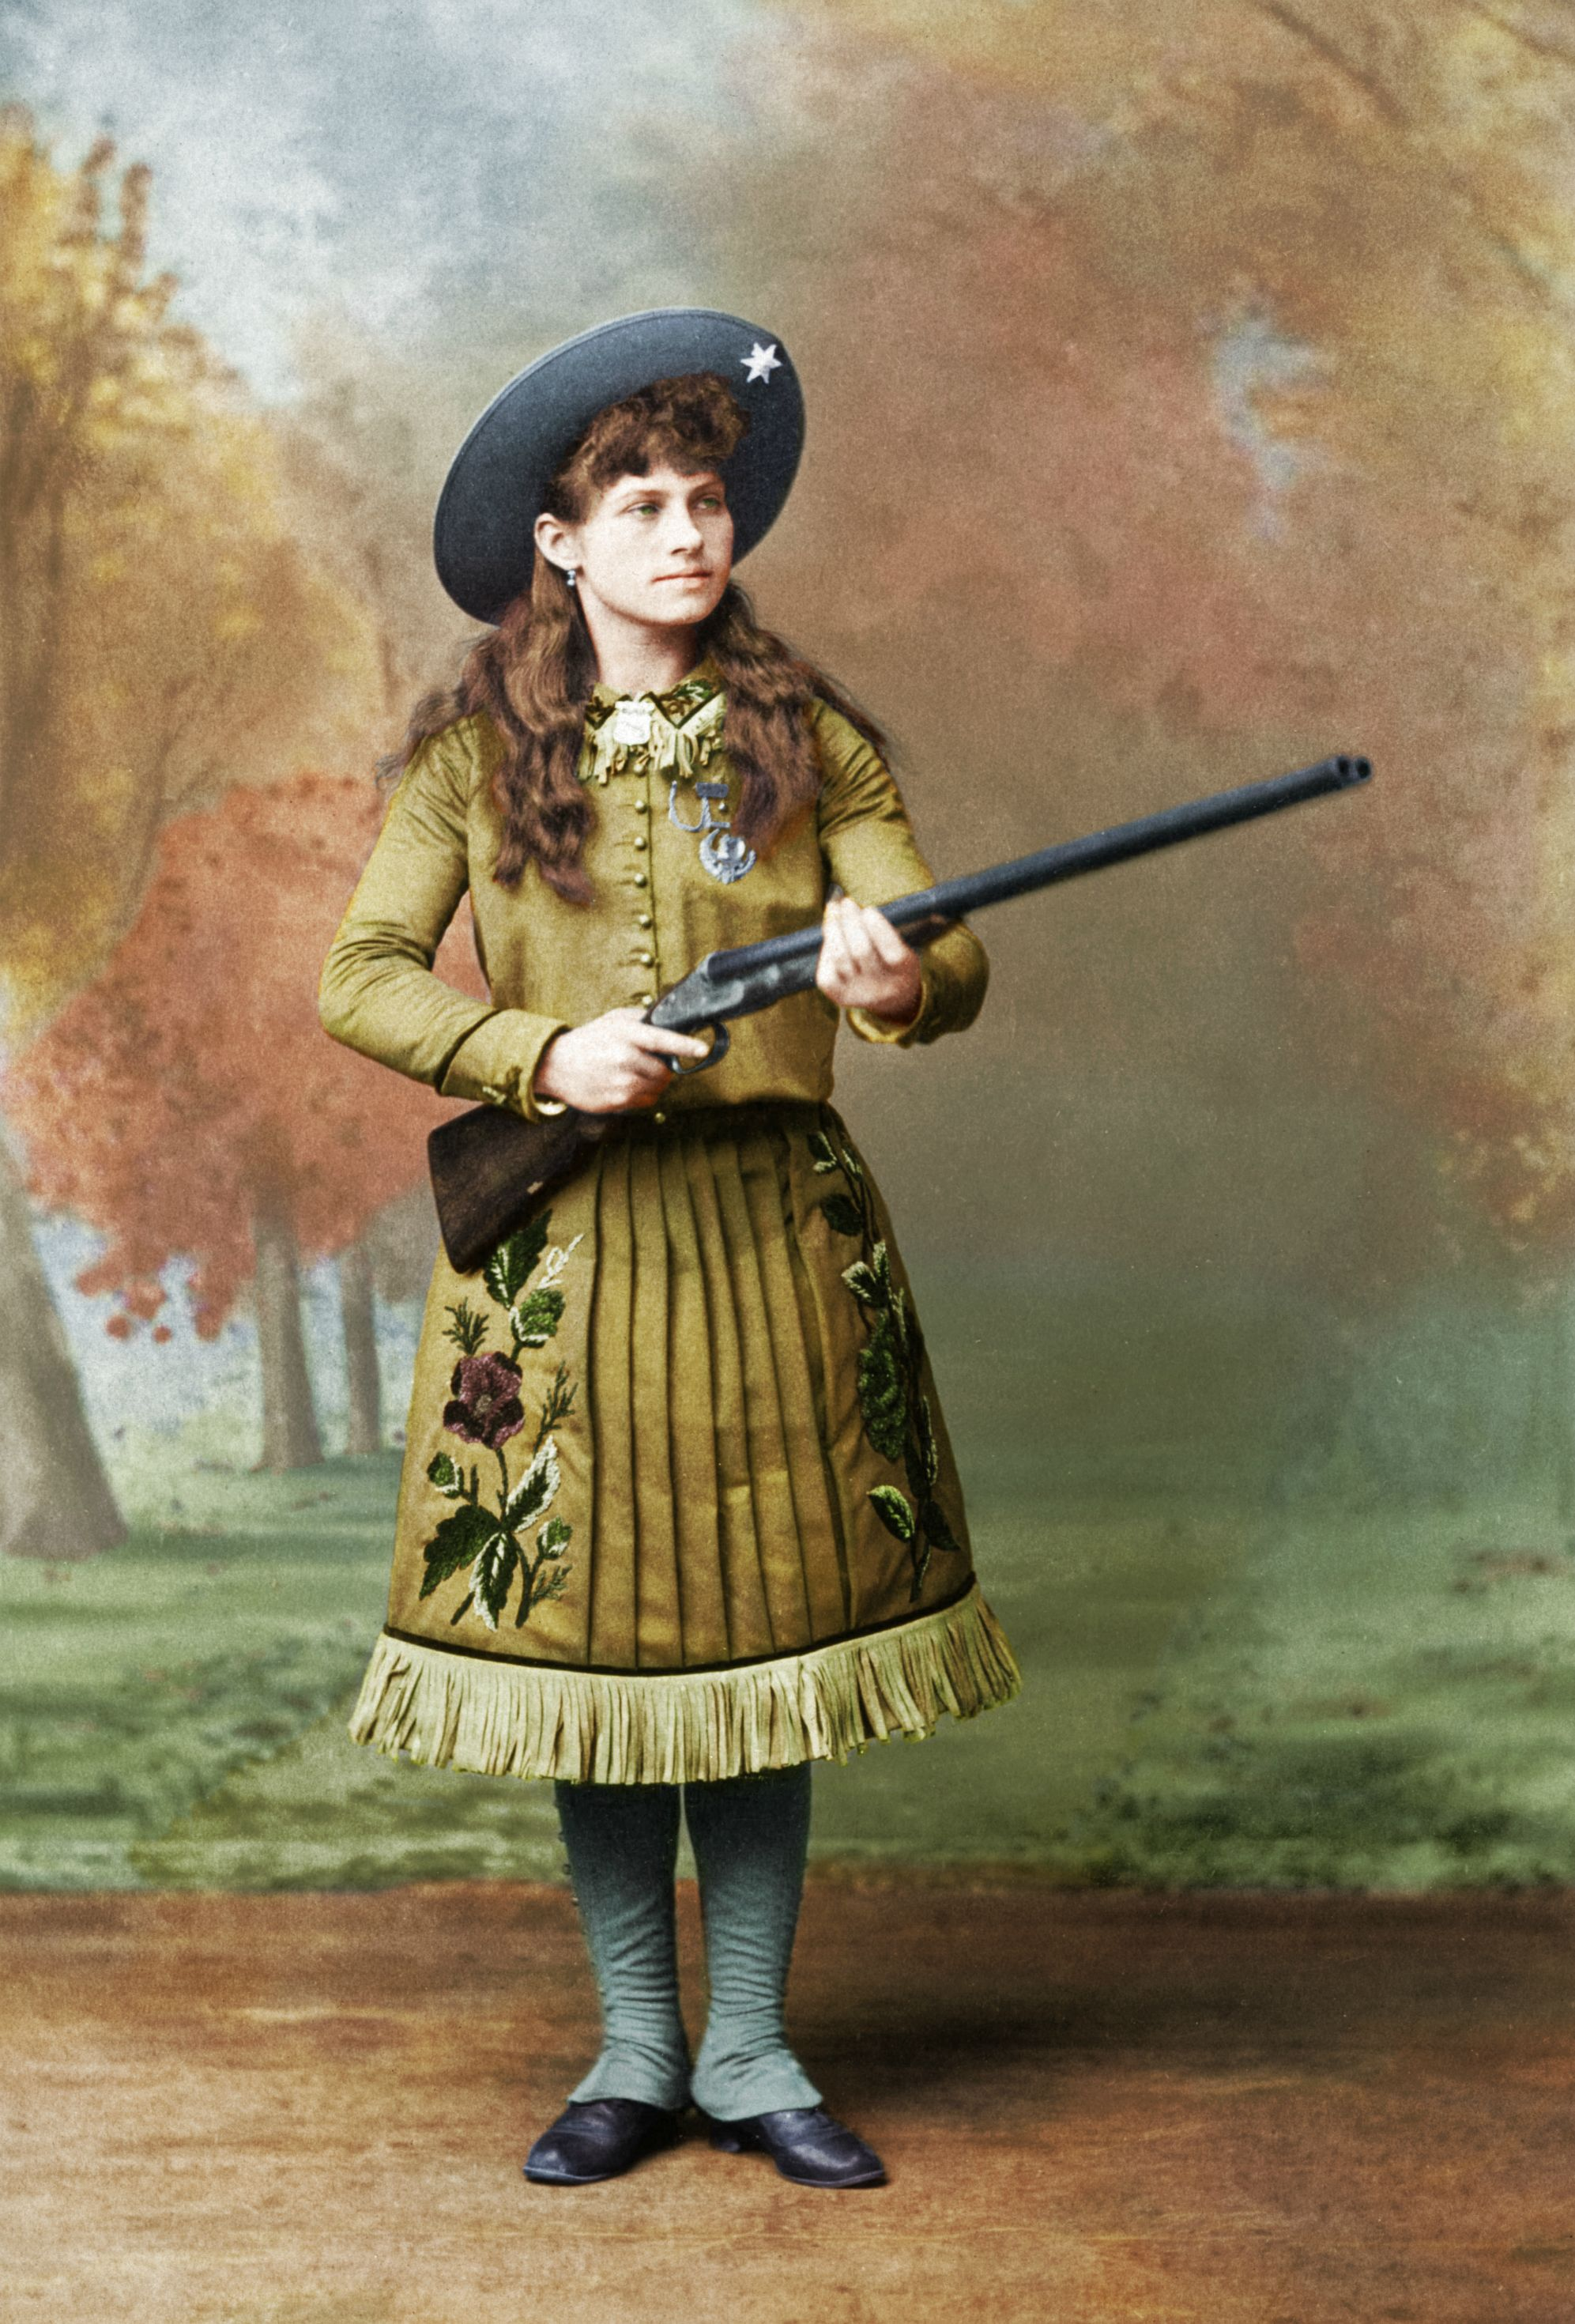 A photograph of Annie Oakley posing with one of her guns in 1888. Colorization by  Geebix